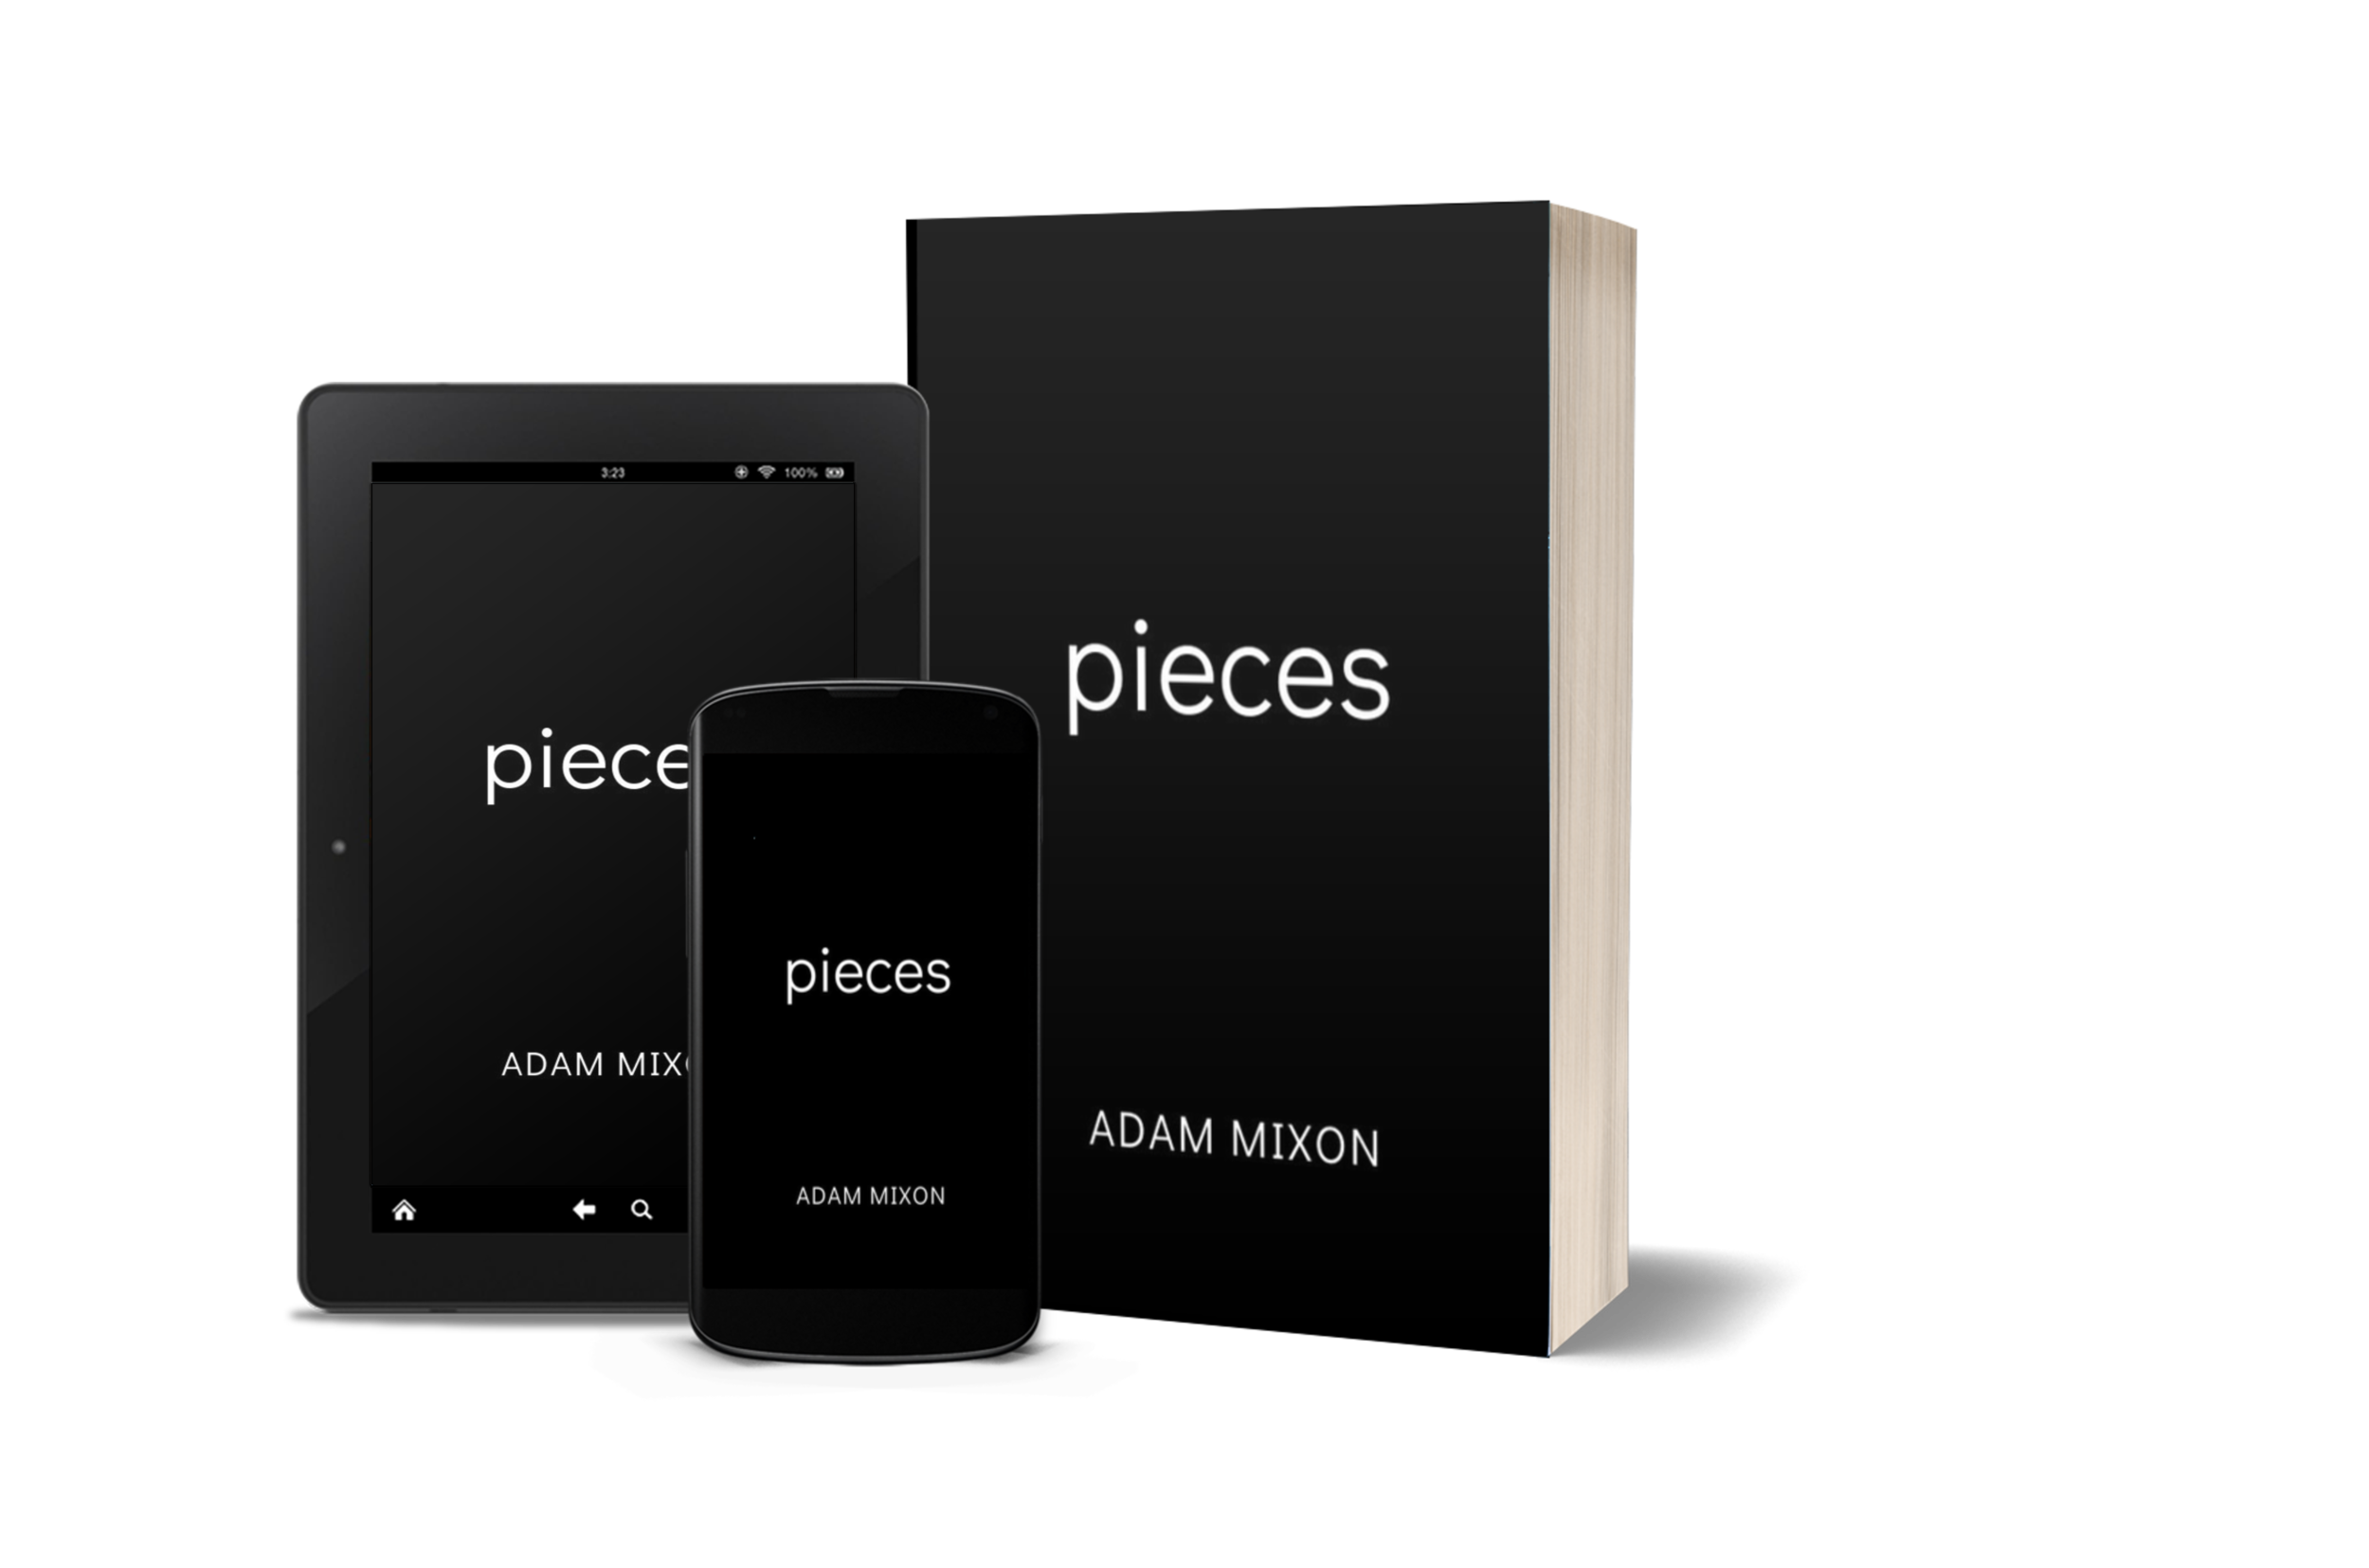 pieces - poetry & spoken word